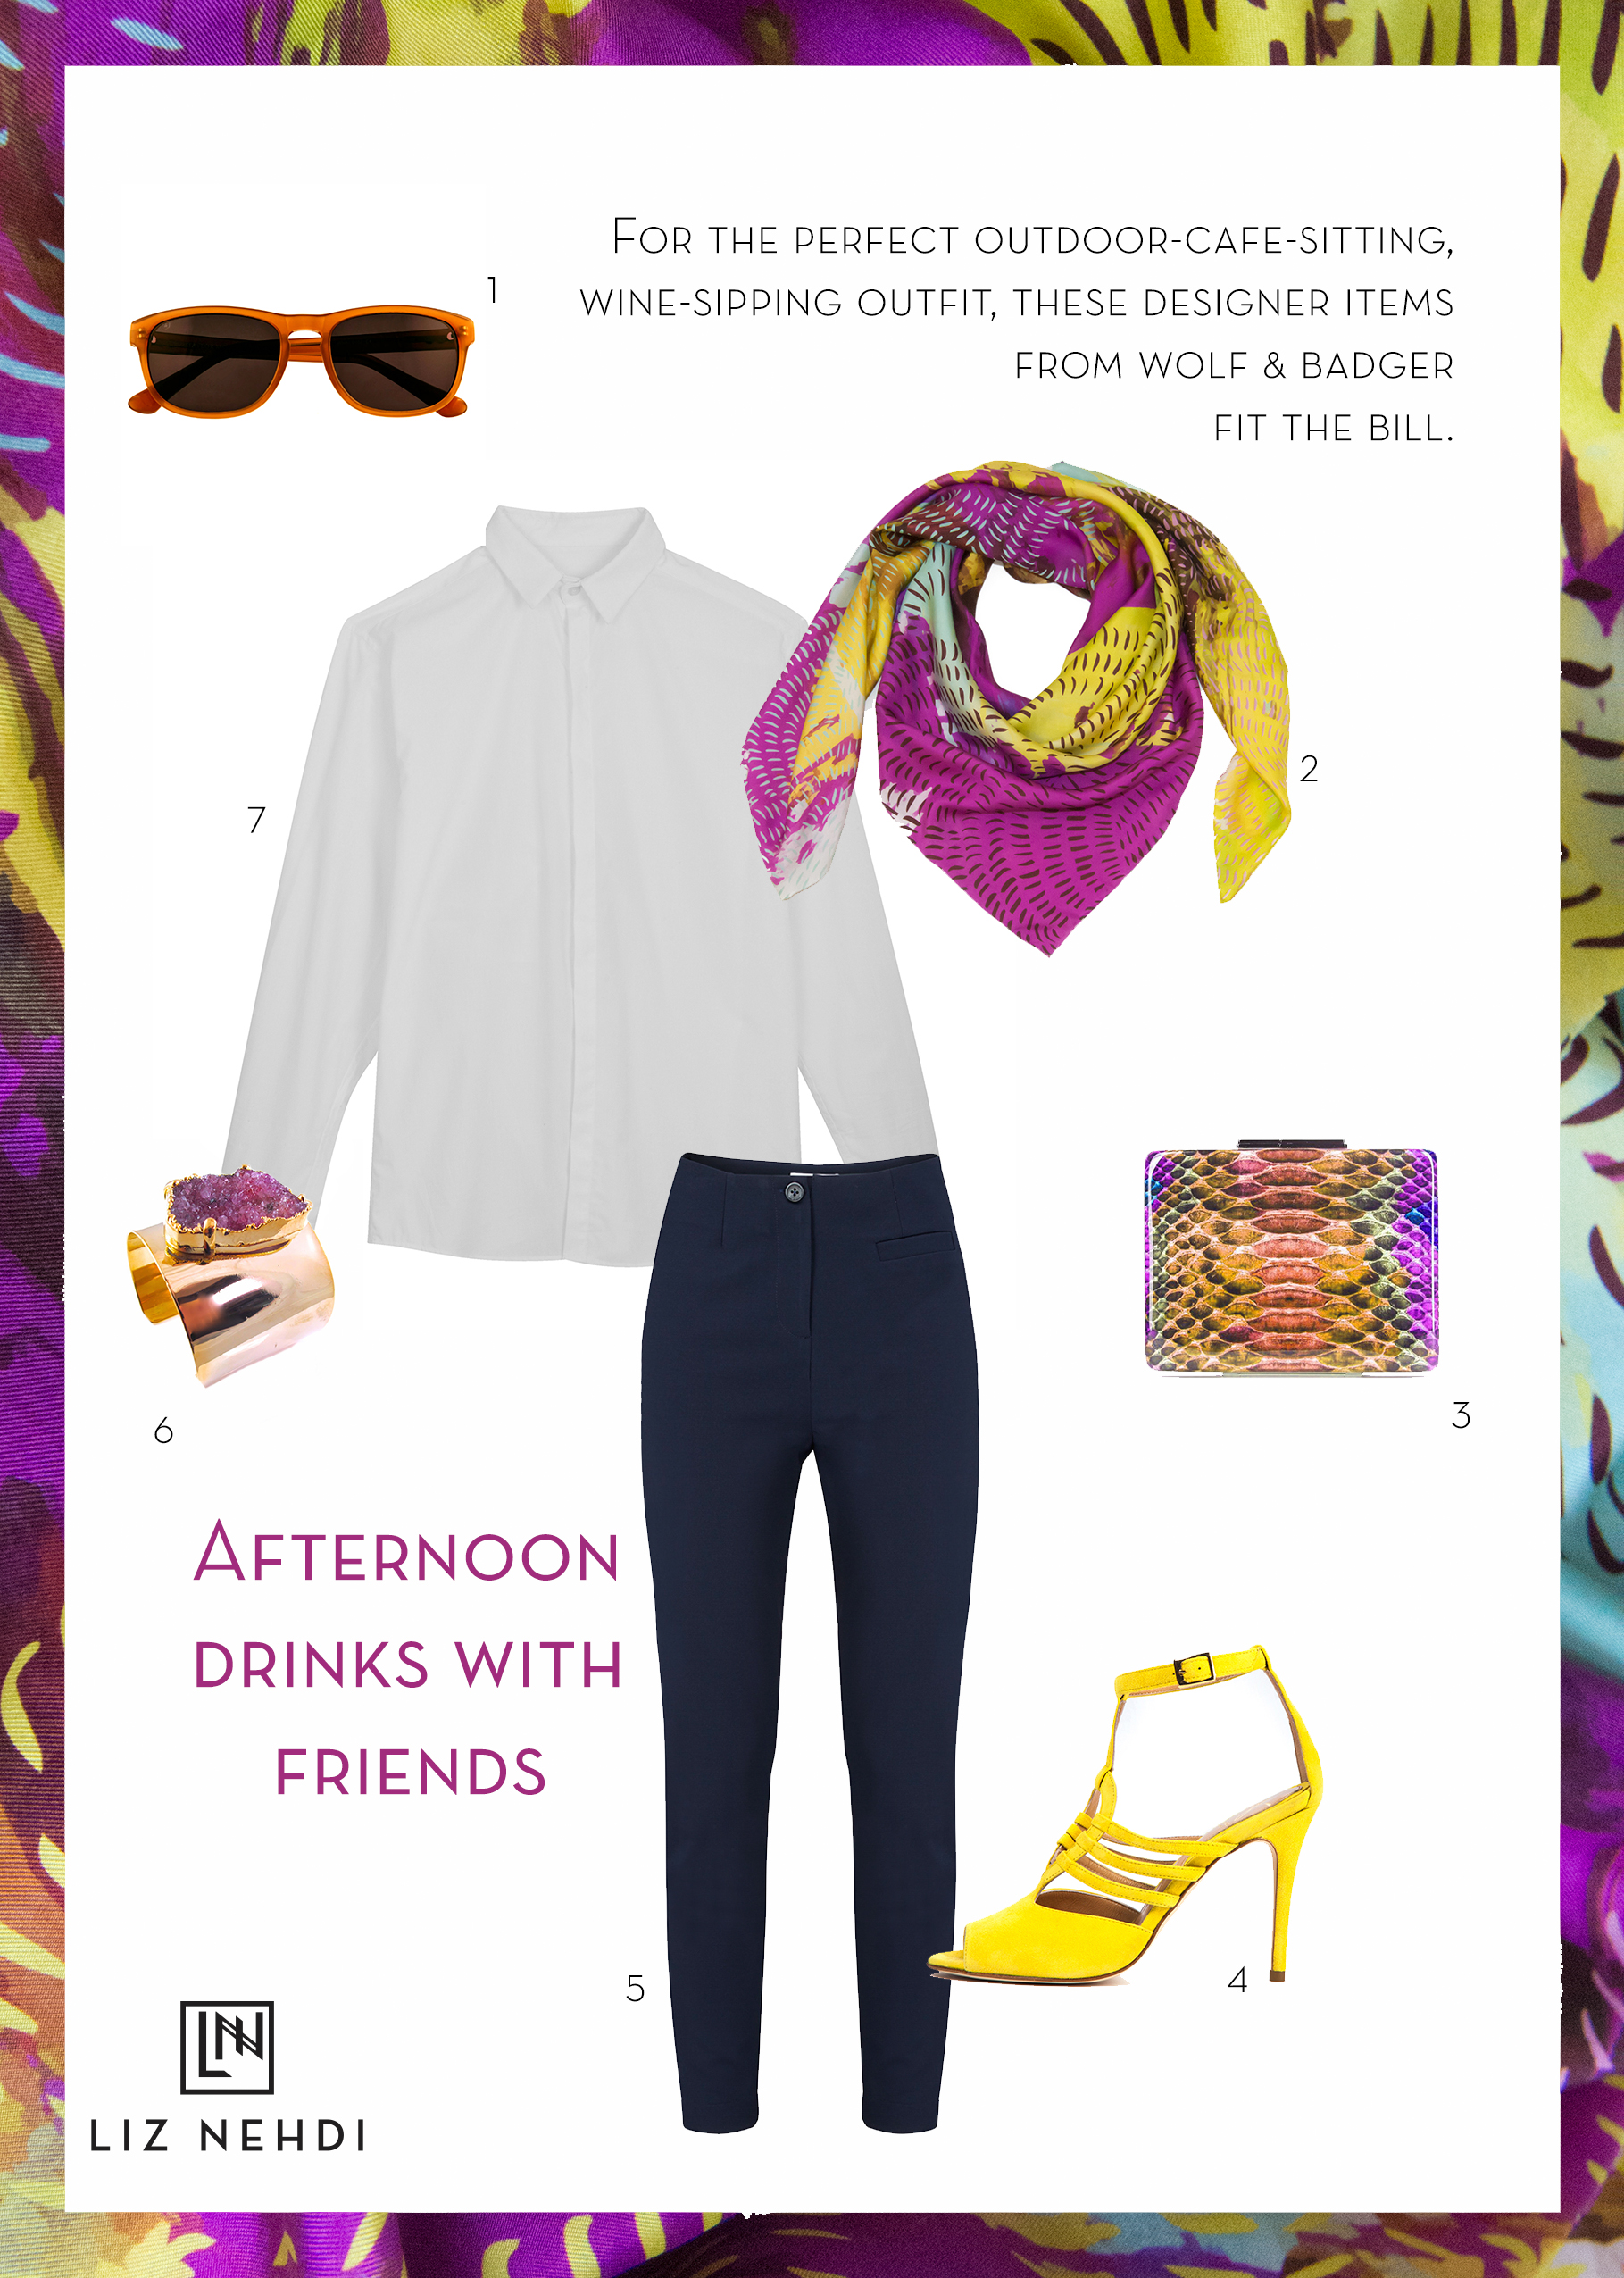 Afternoon drinks outfit collage by Liz Nehdi Studio, 2015. See below for product info